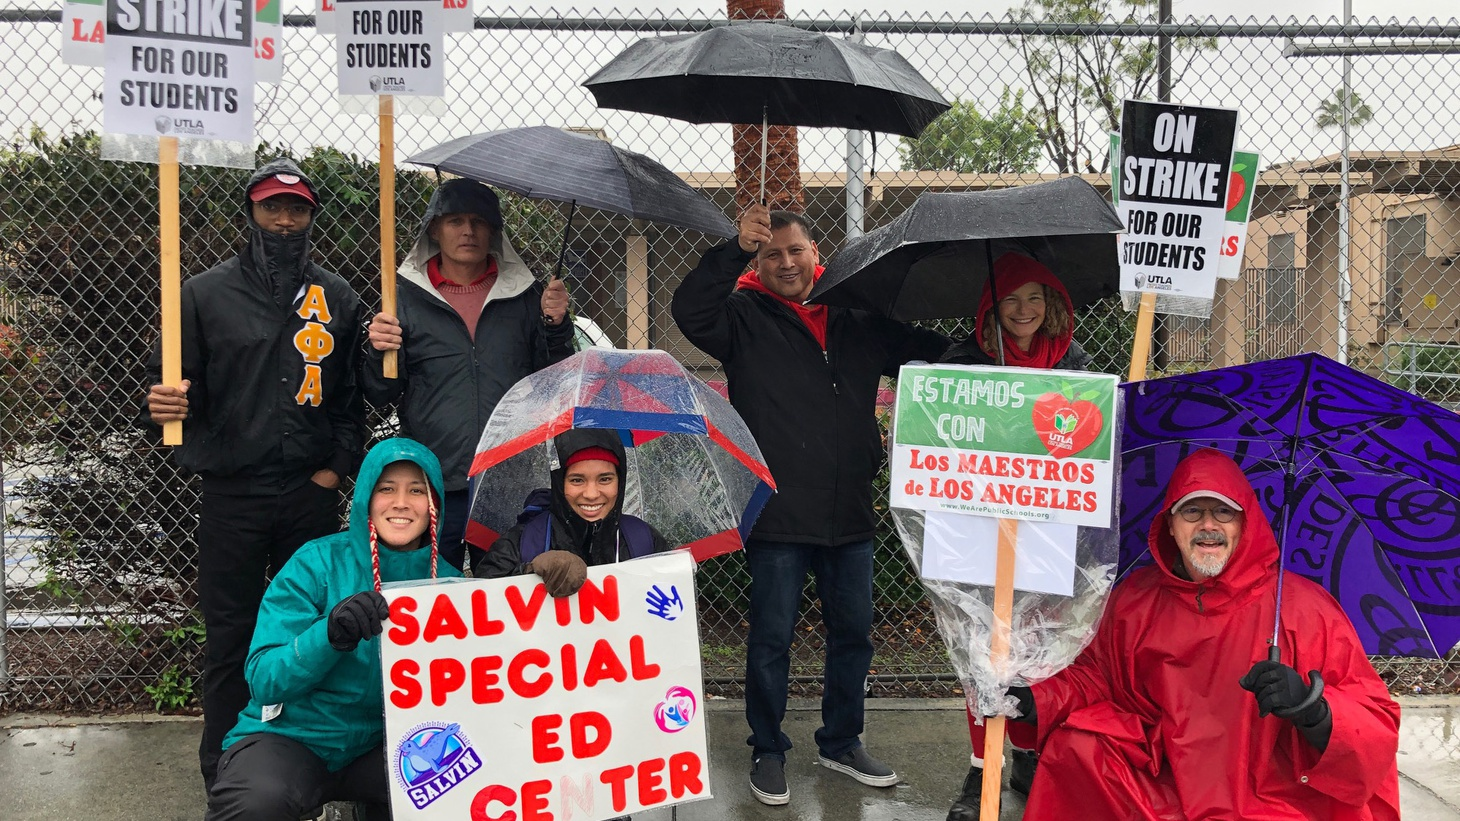 Special ed teachers striking at Salvin special education center.